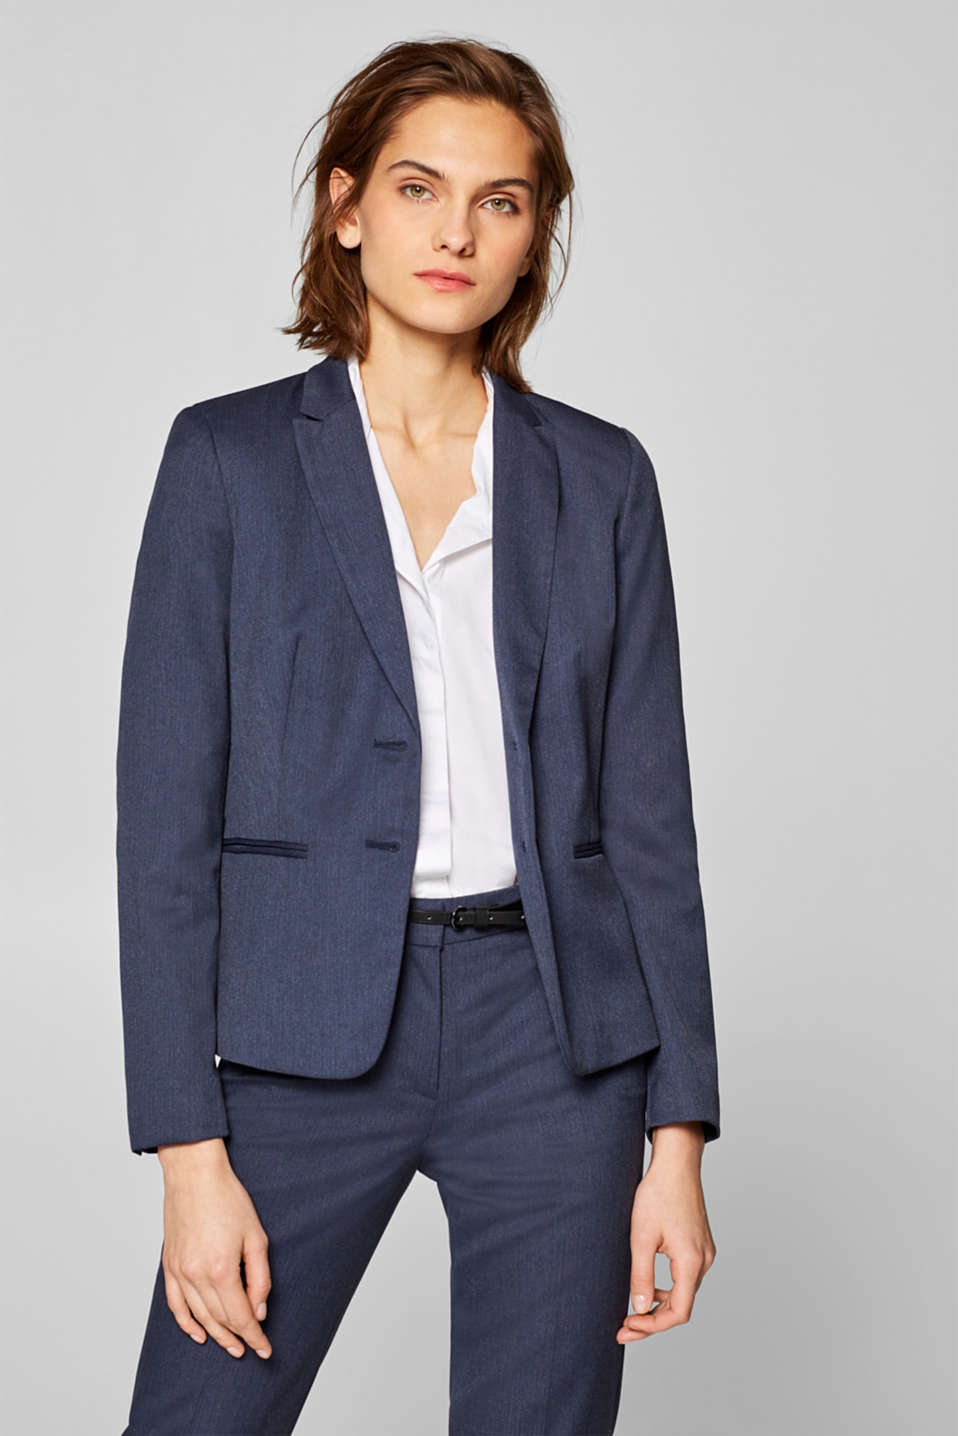 Esprit - BUSINESS MIX + MATCH blazer met visgraatmotief